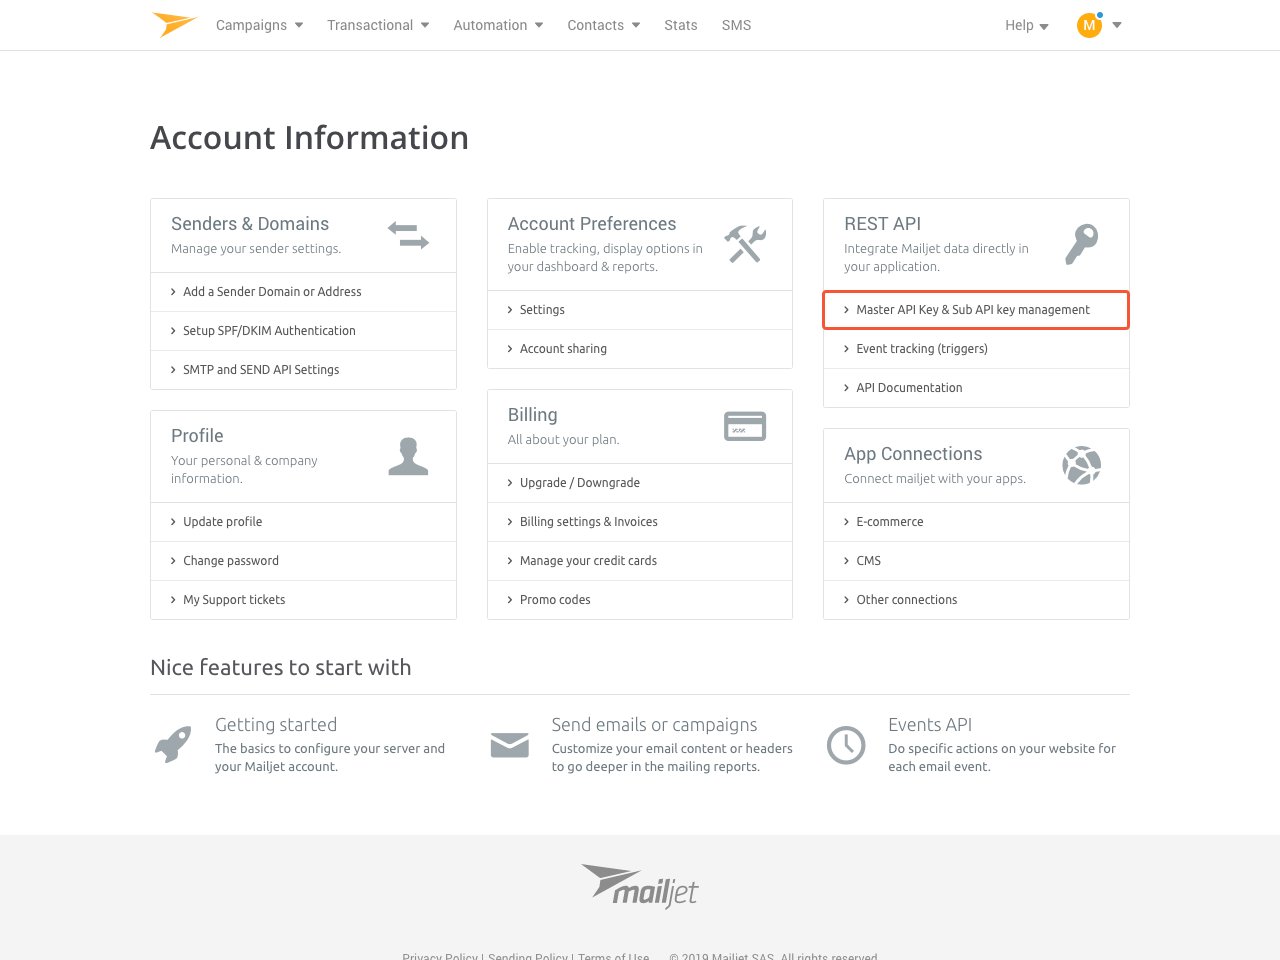 Account Information section in Mailjet control panel